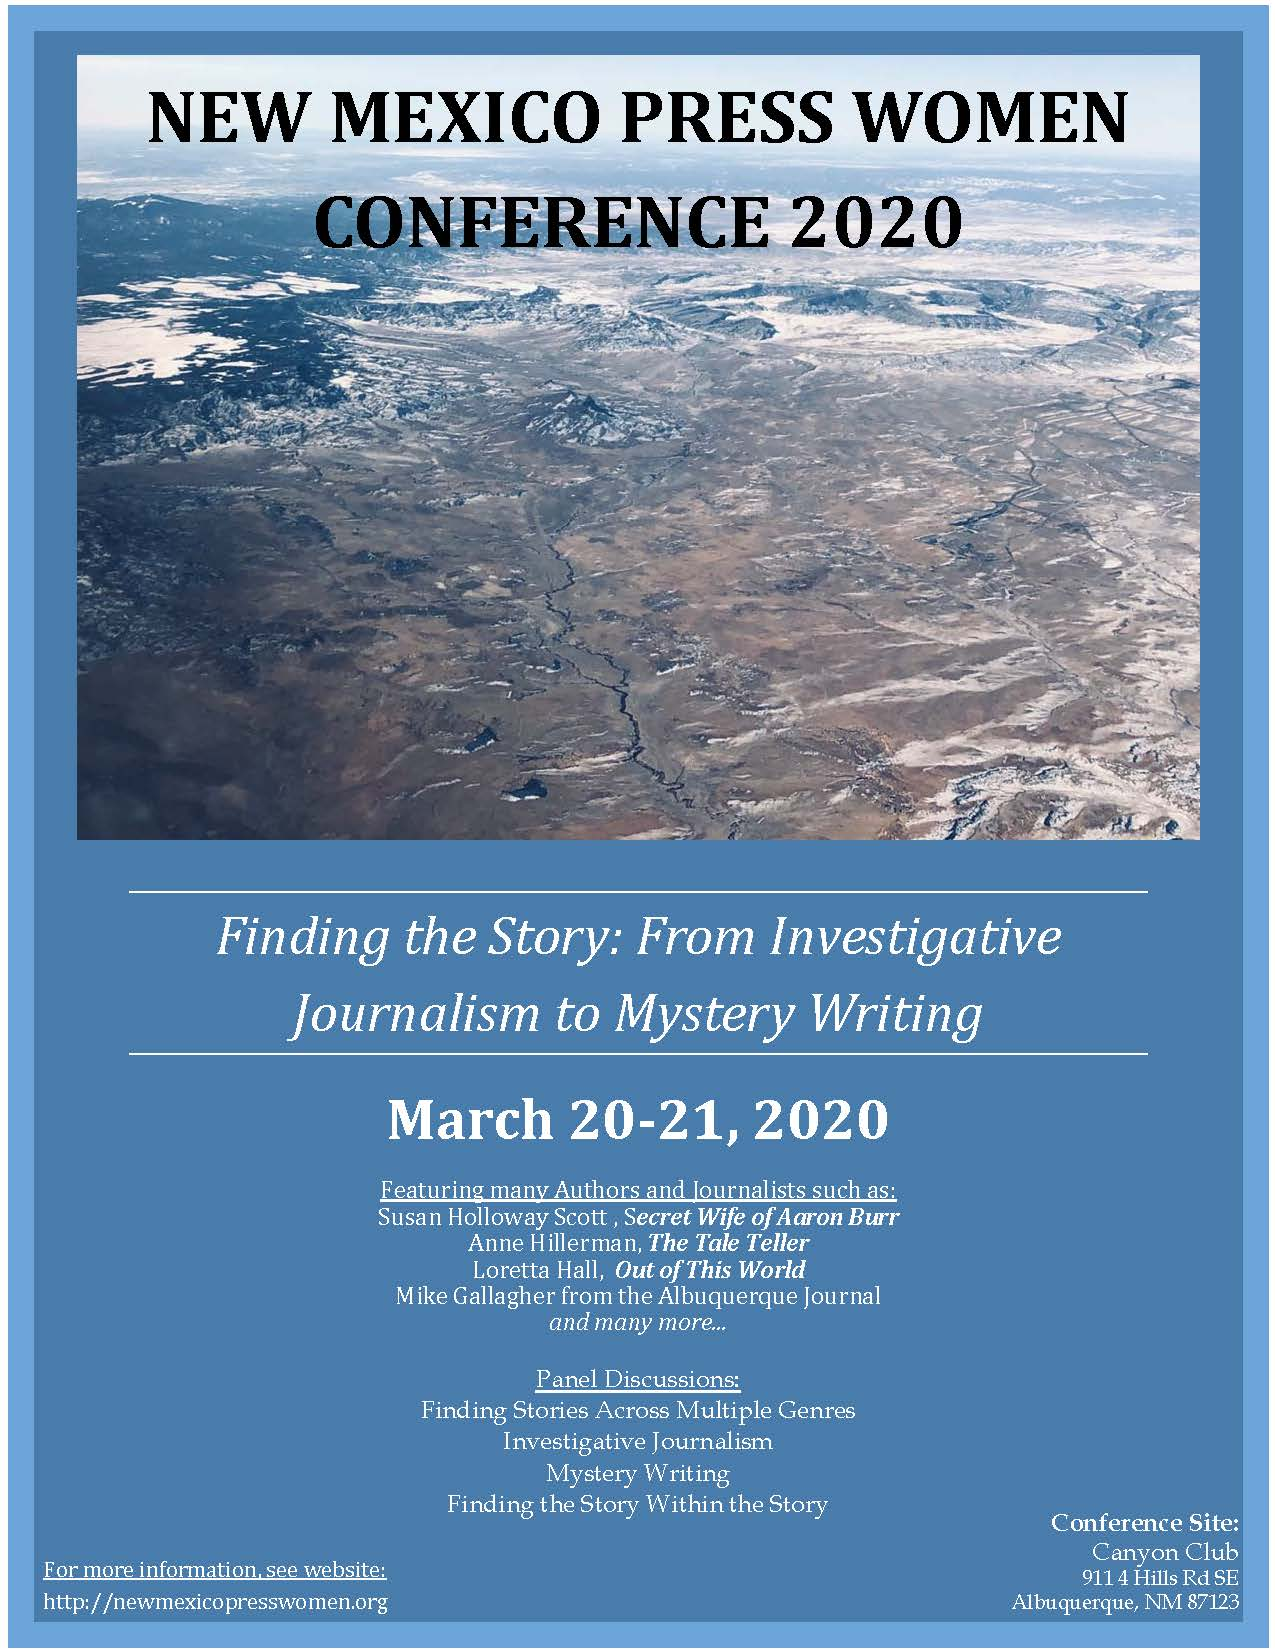 New Mexico Press Women Conference flyer